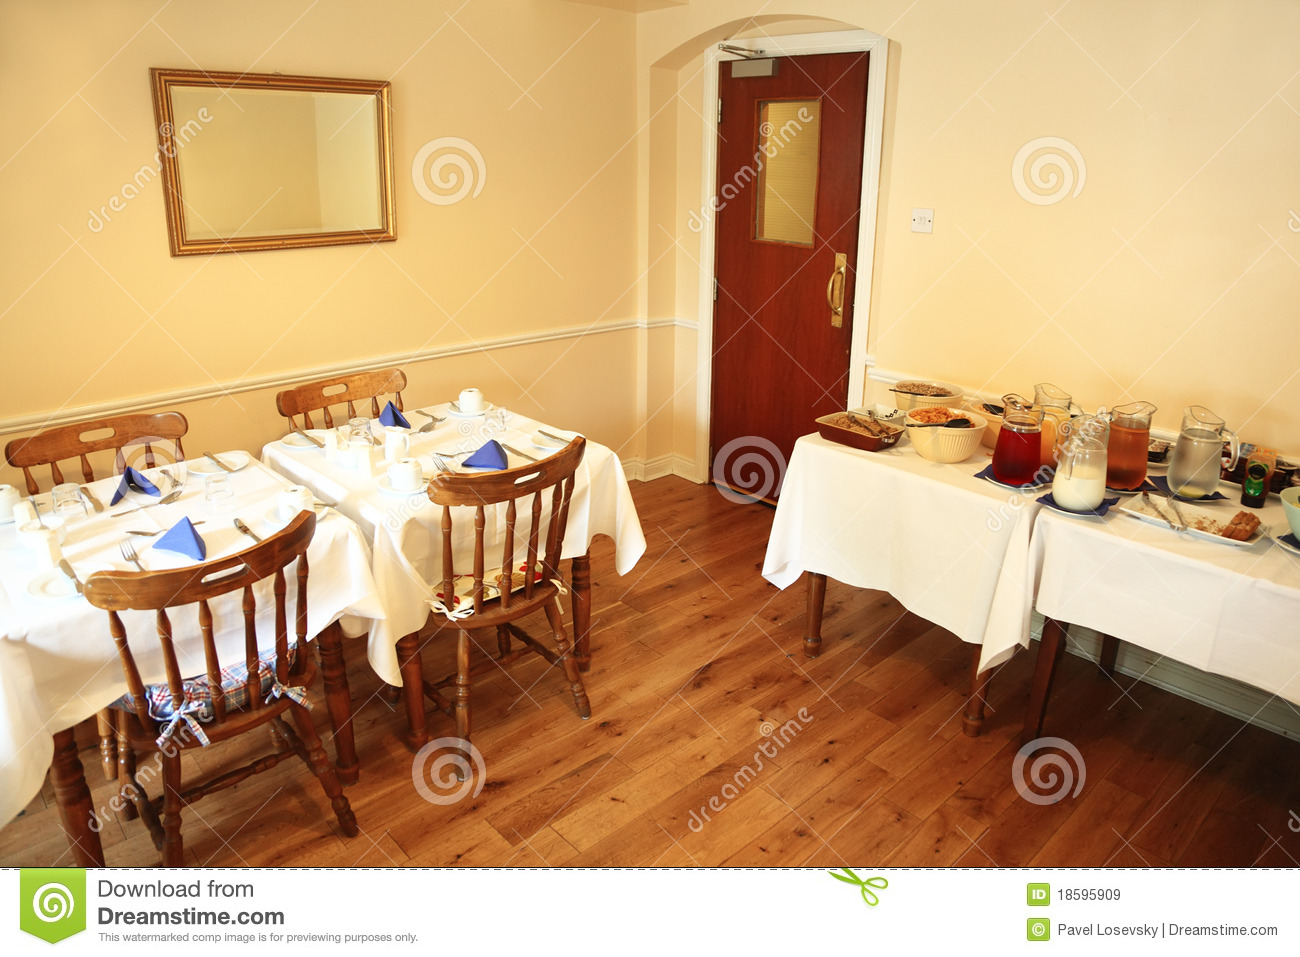 Small Cozy Restaurant With Food On Table Royalty Free